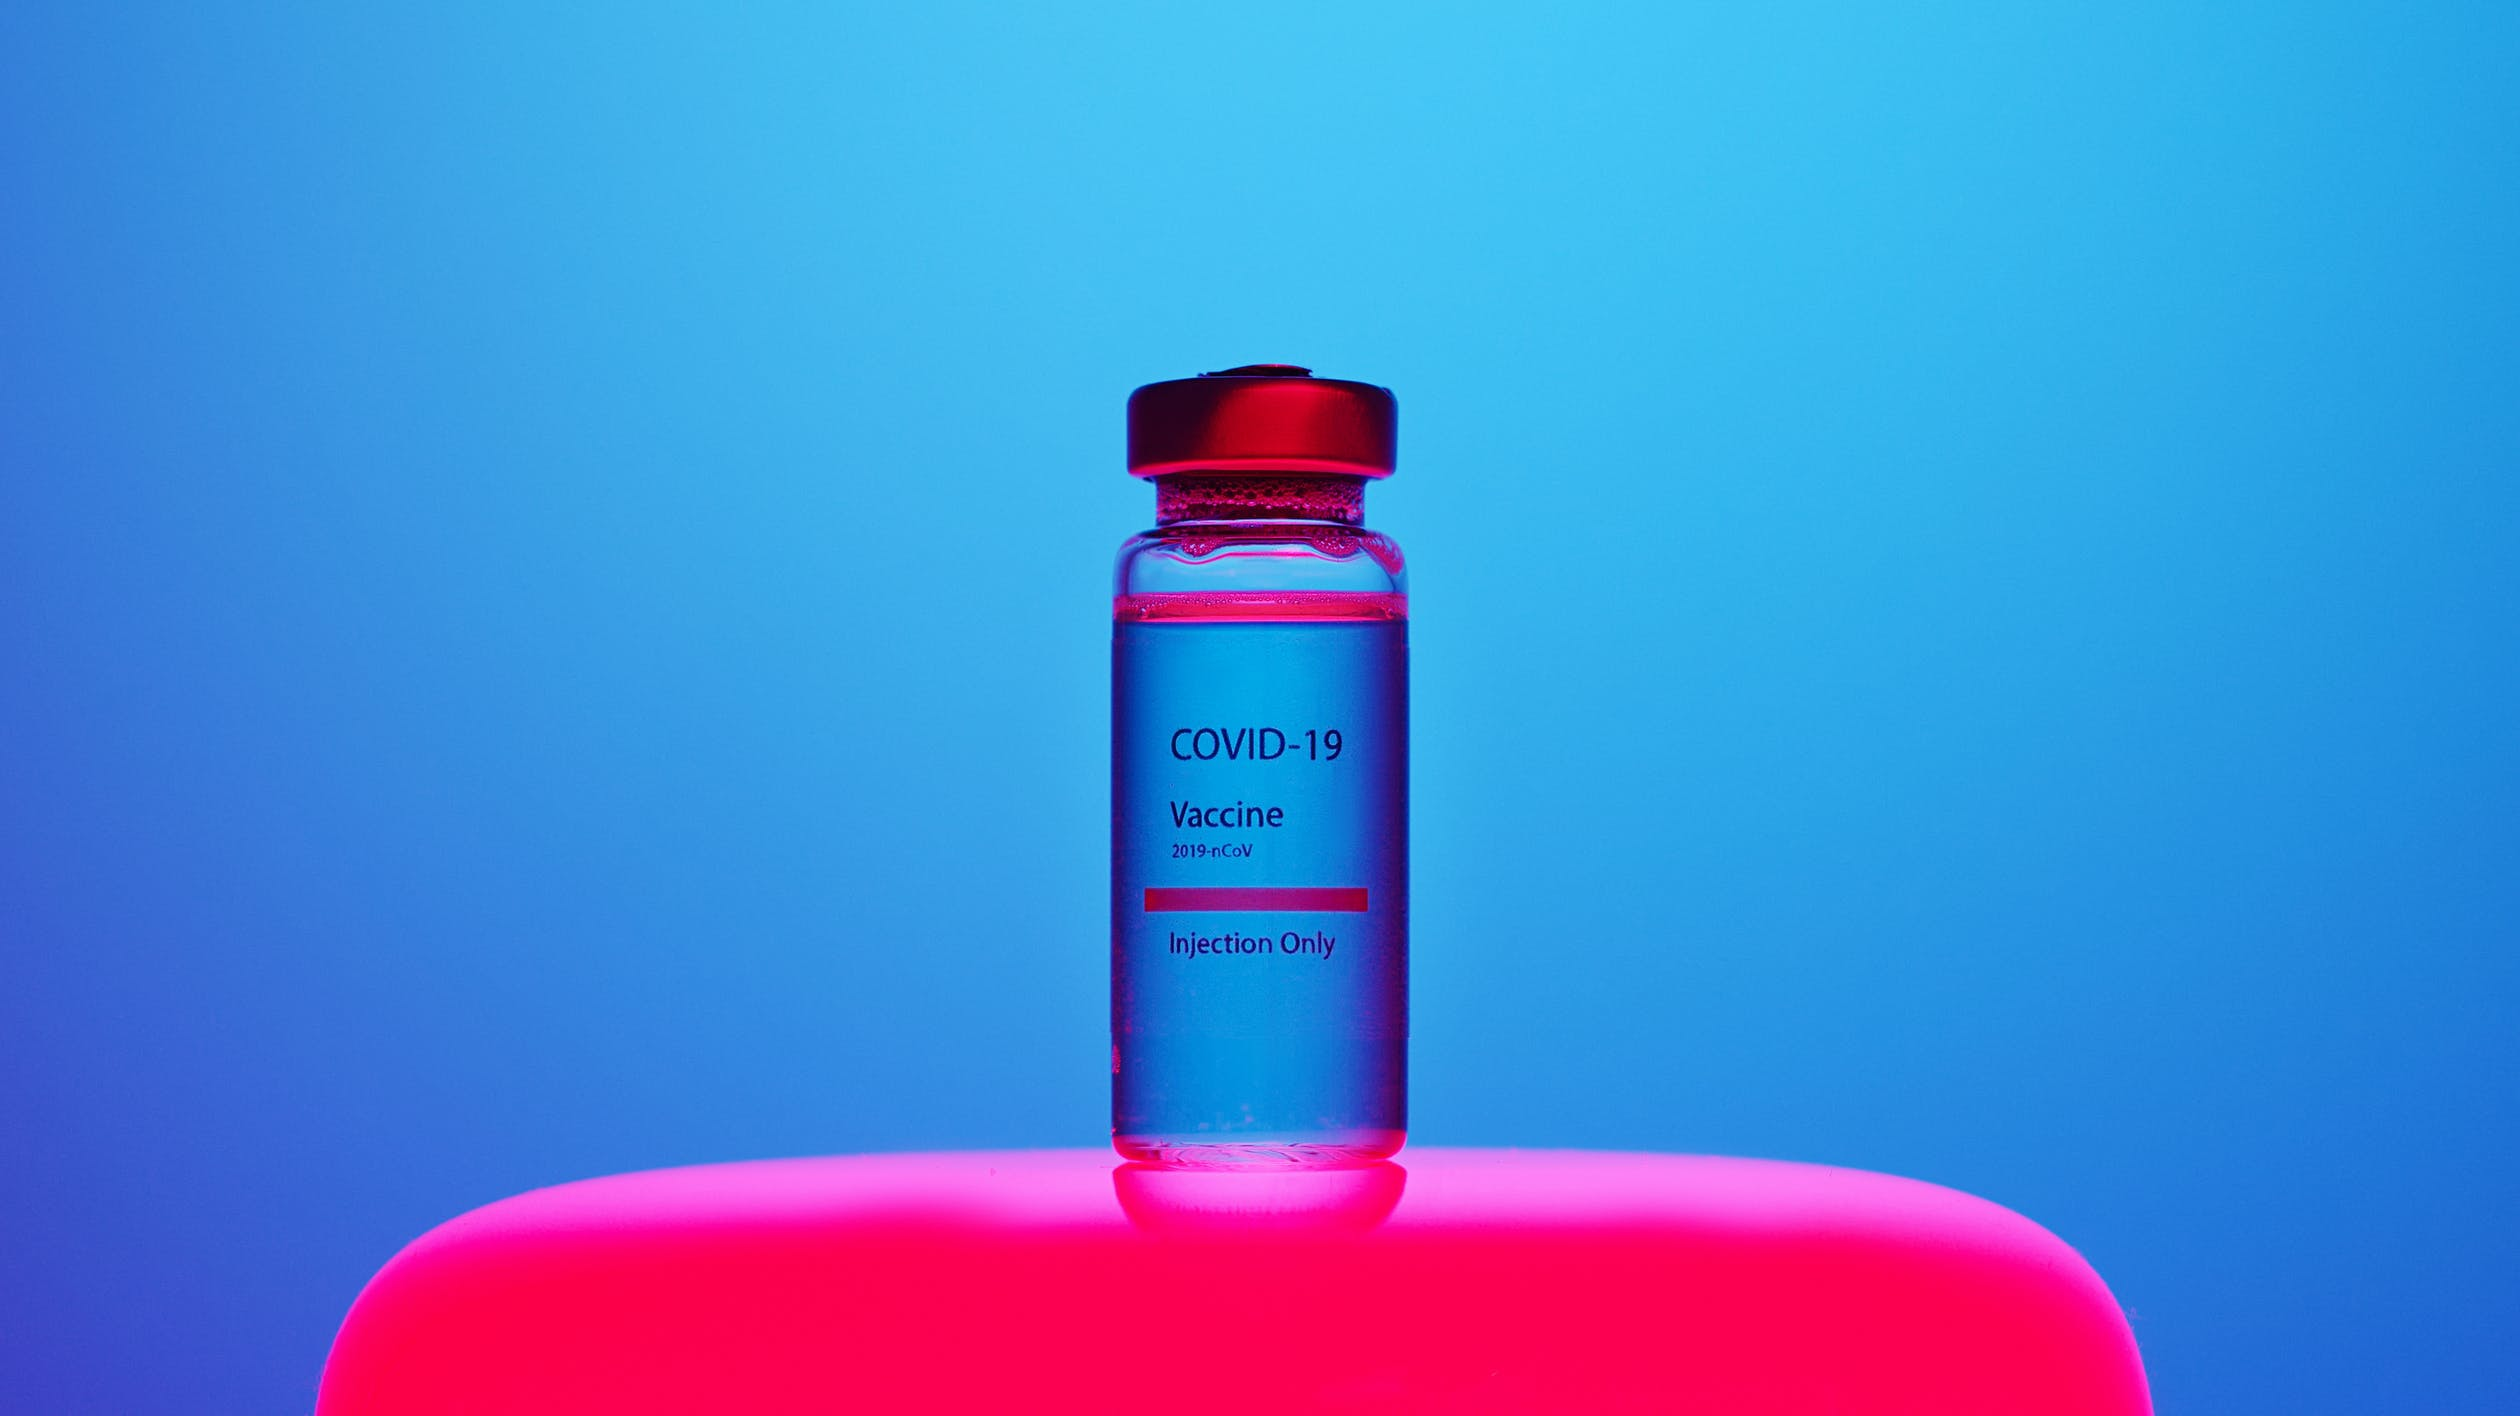 A vial reading COVID-19 Vaccine sits on a red table with a blue backdrop